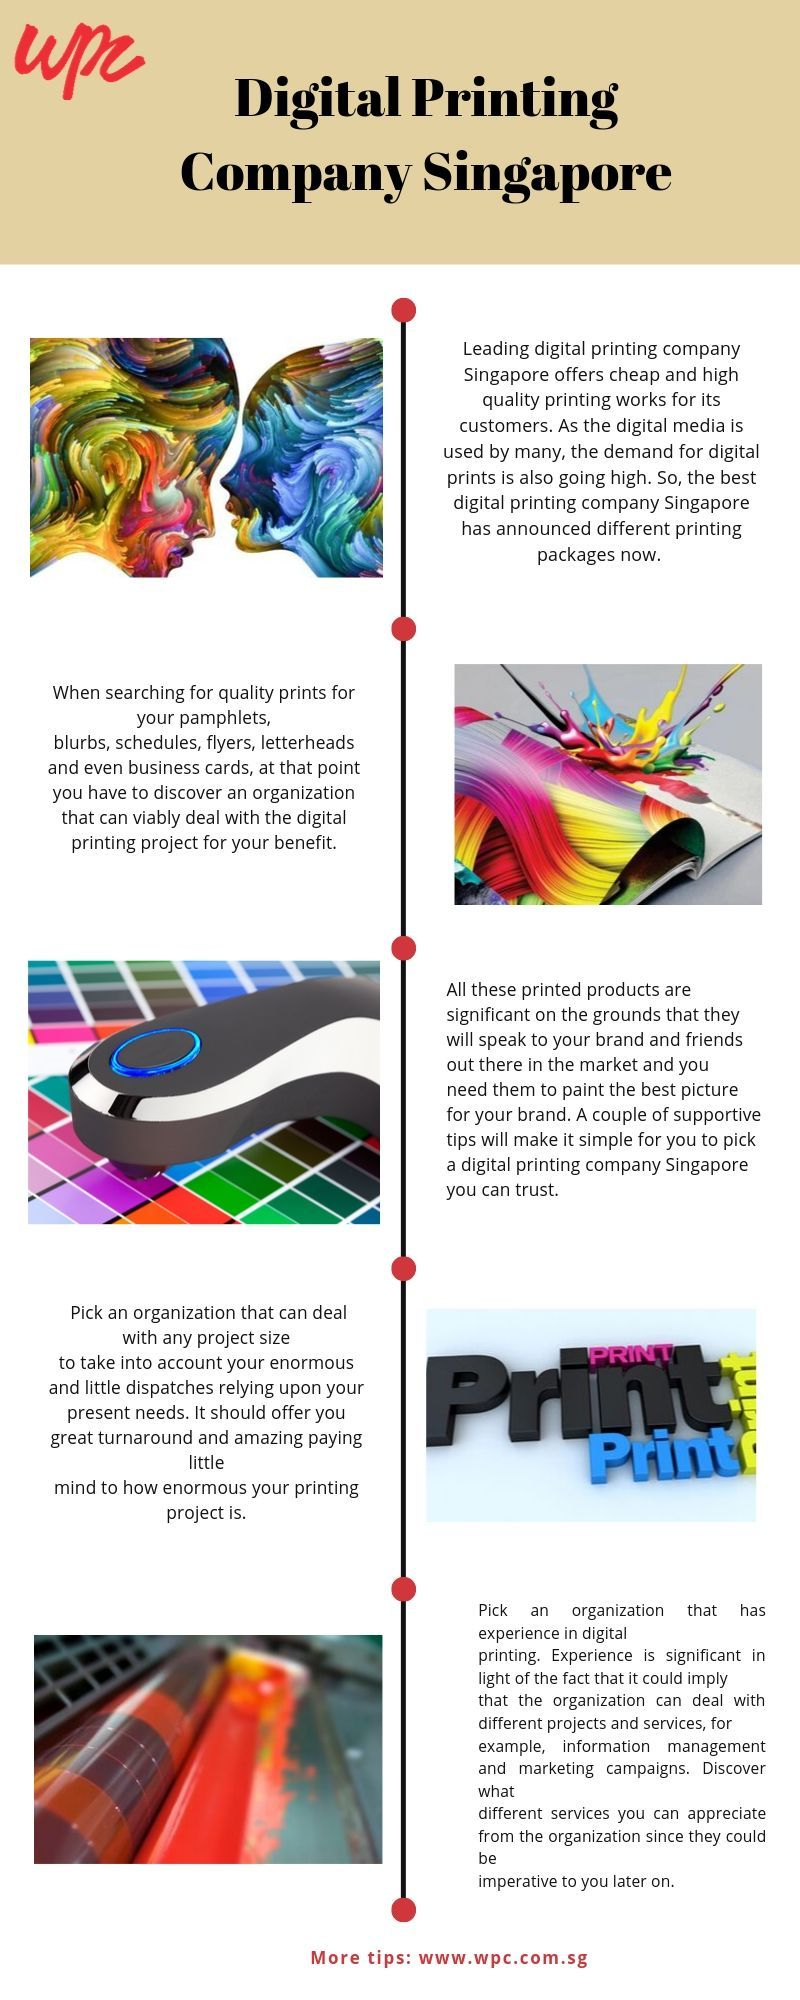 Leading digital printing company Singapore offers cheap